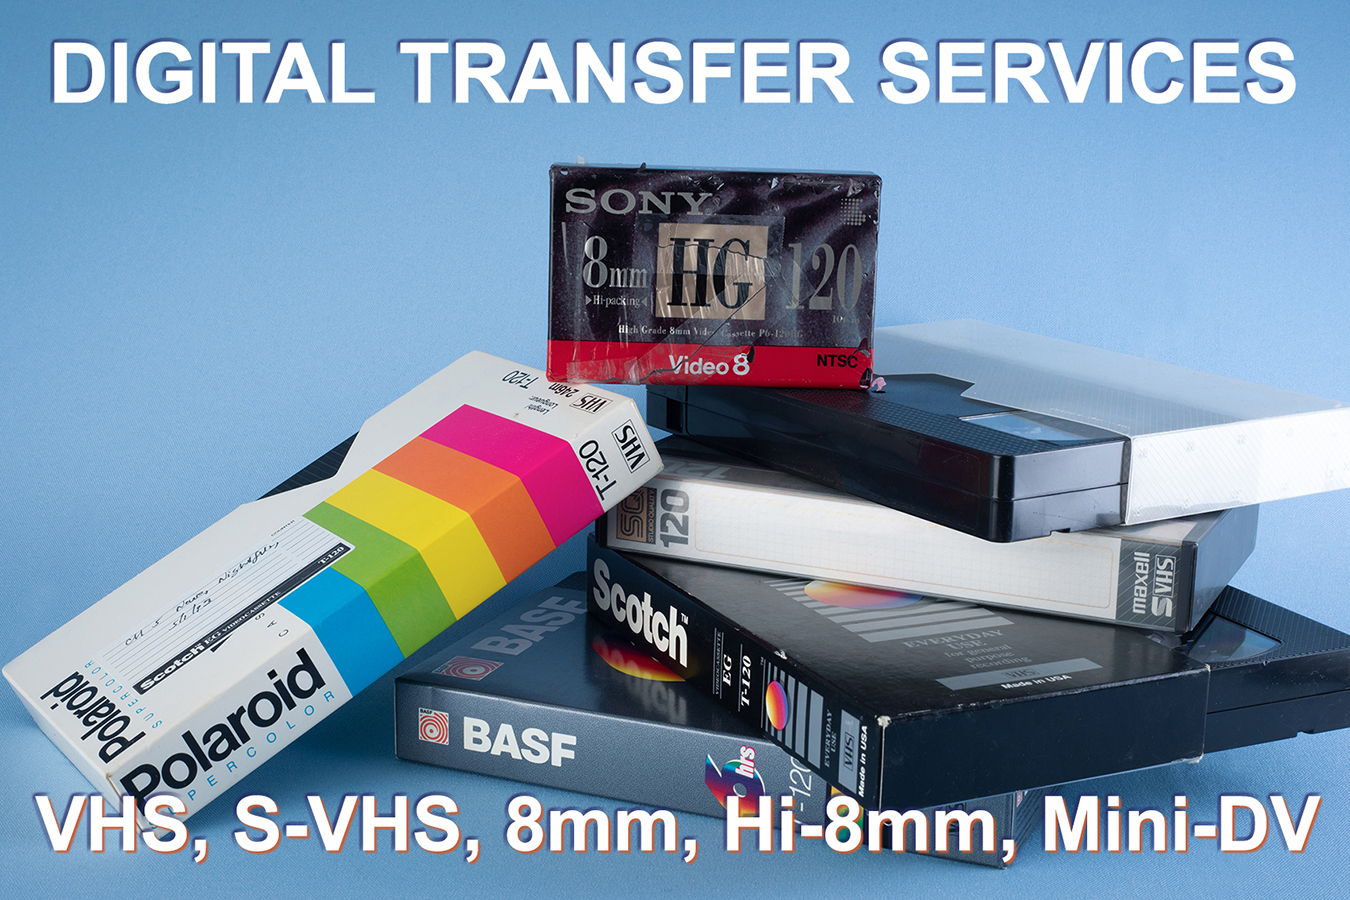 Digital Transfer Services - VHS, Super-VHS, 8mm, Hi-8mm Video cassette to digital transfer service